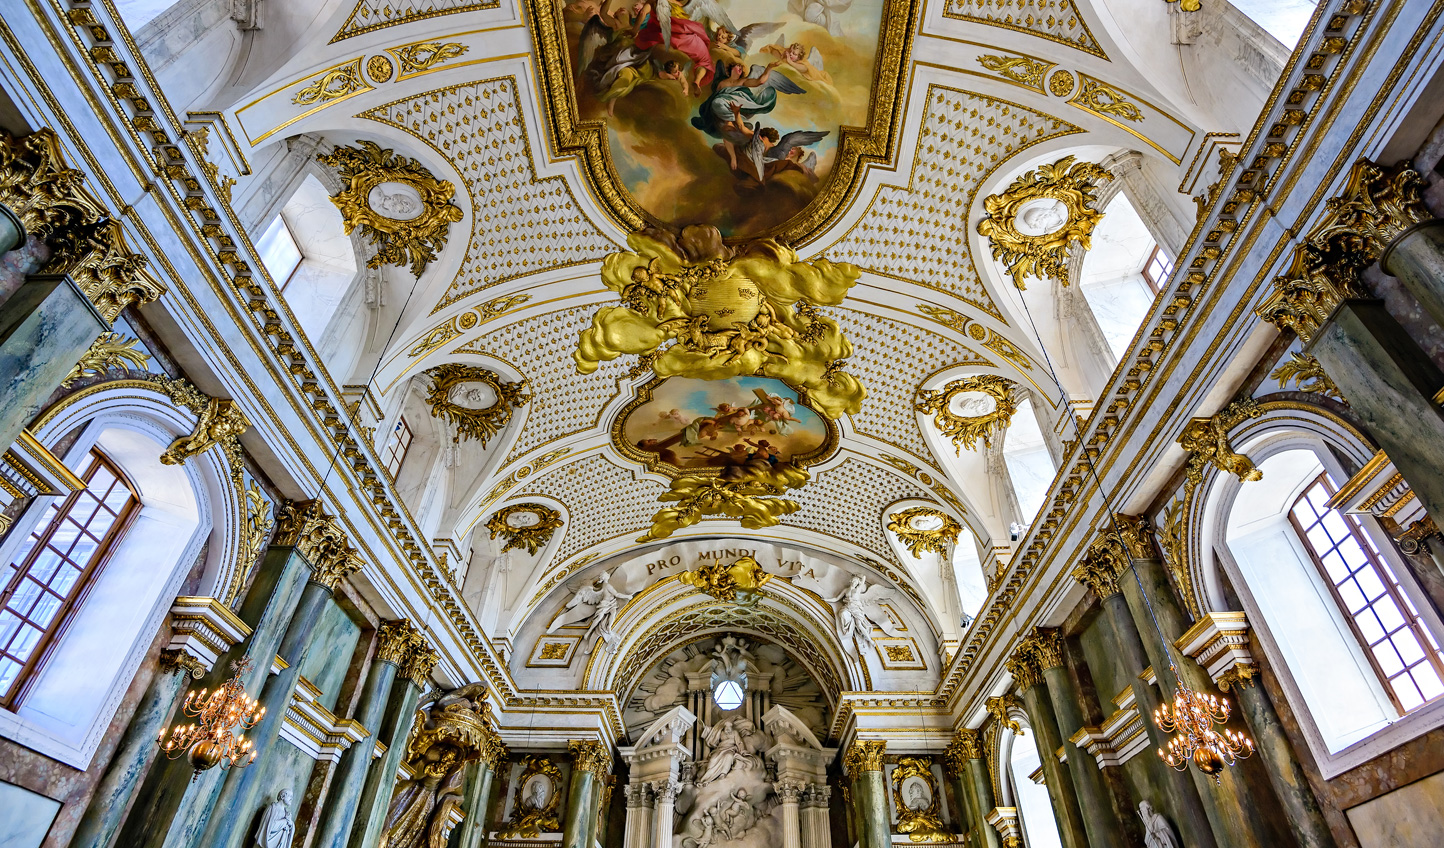 Explore the beautiful Royal Chapel during your walking tour